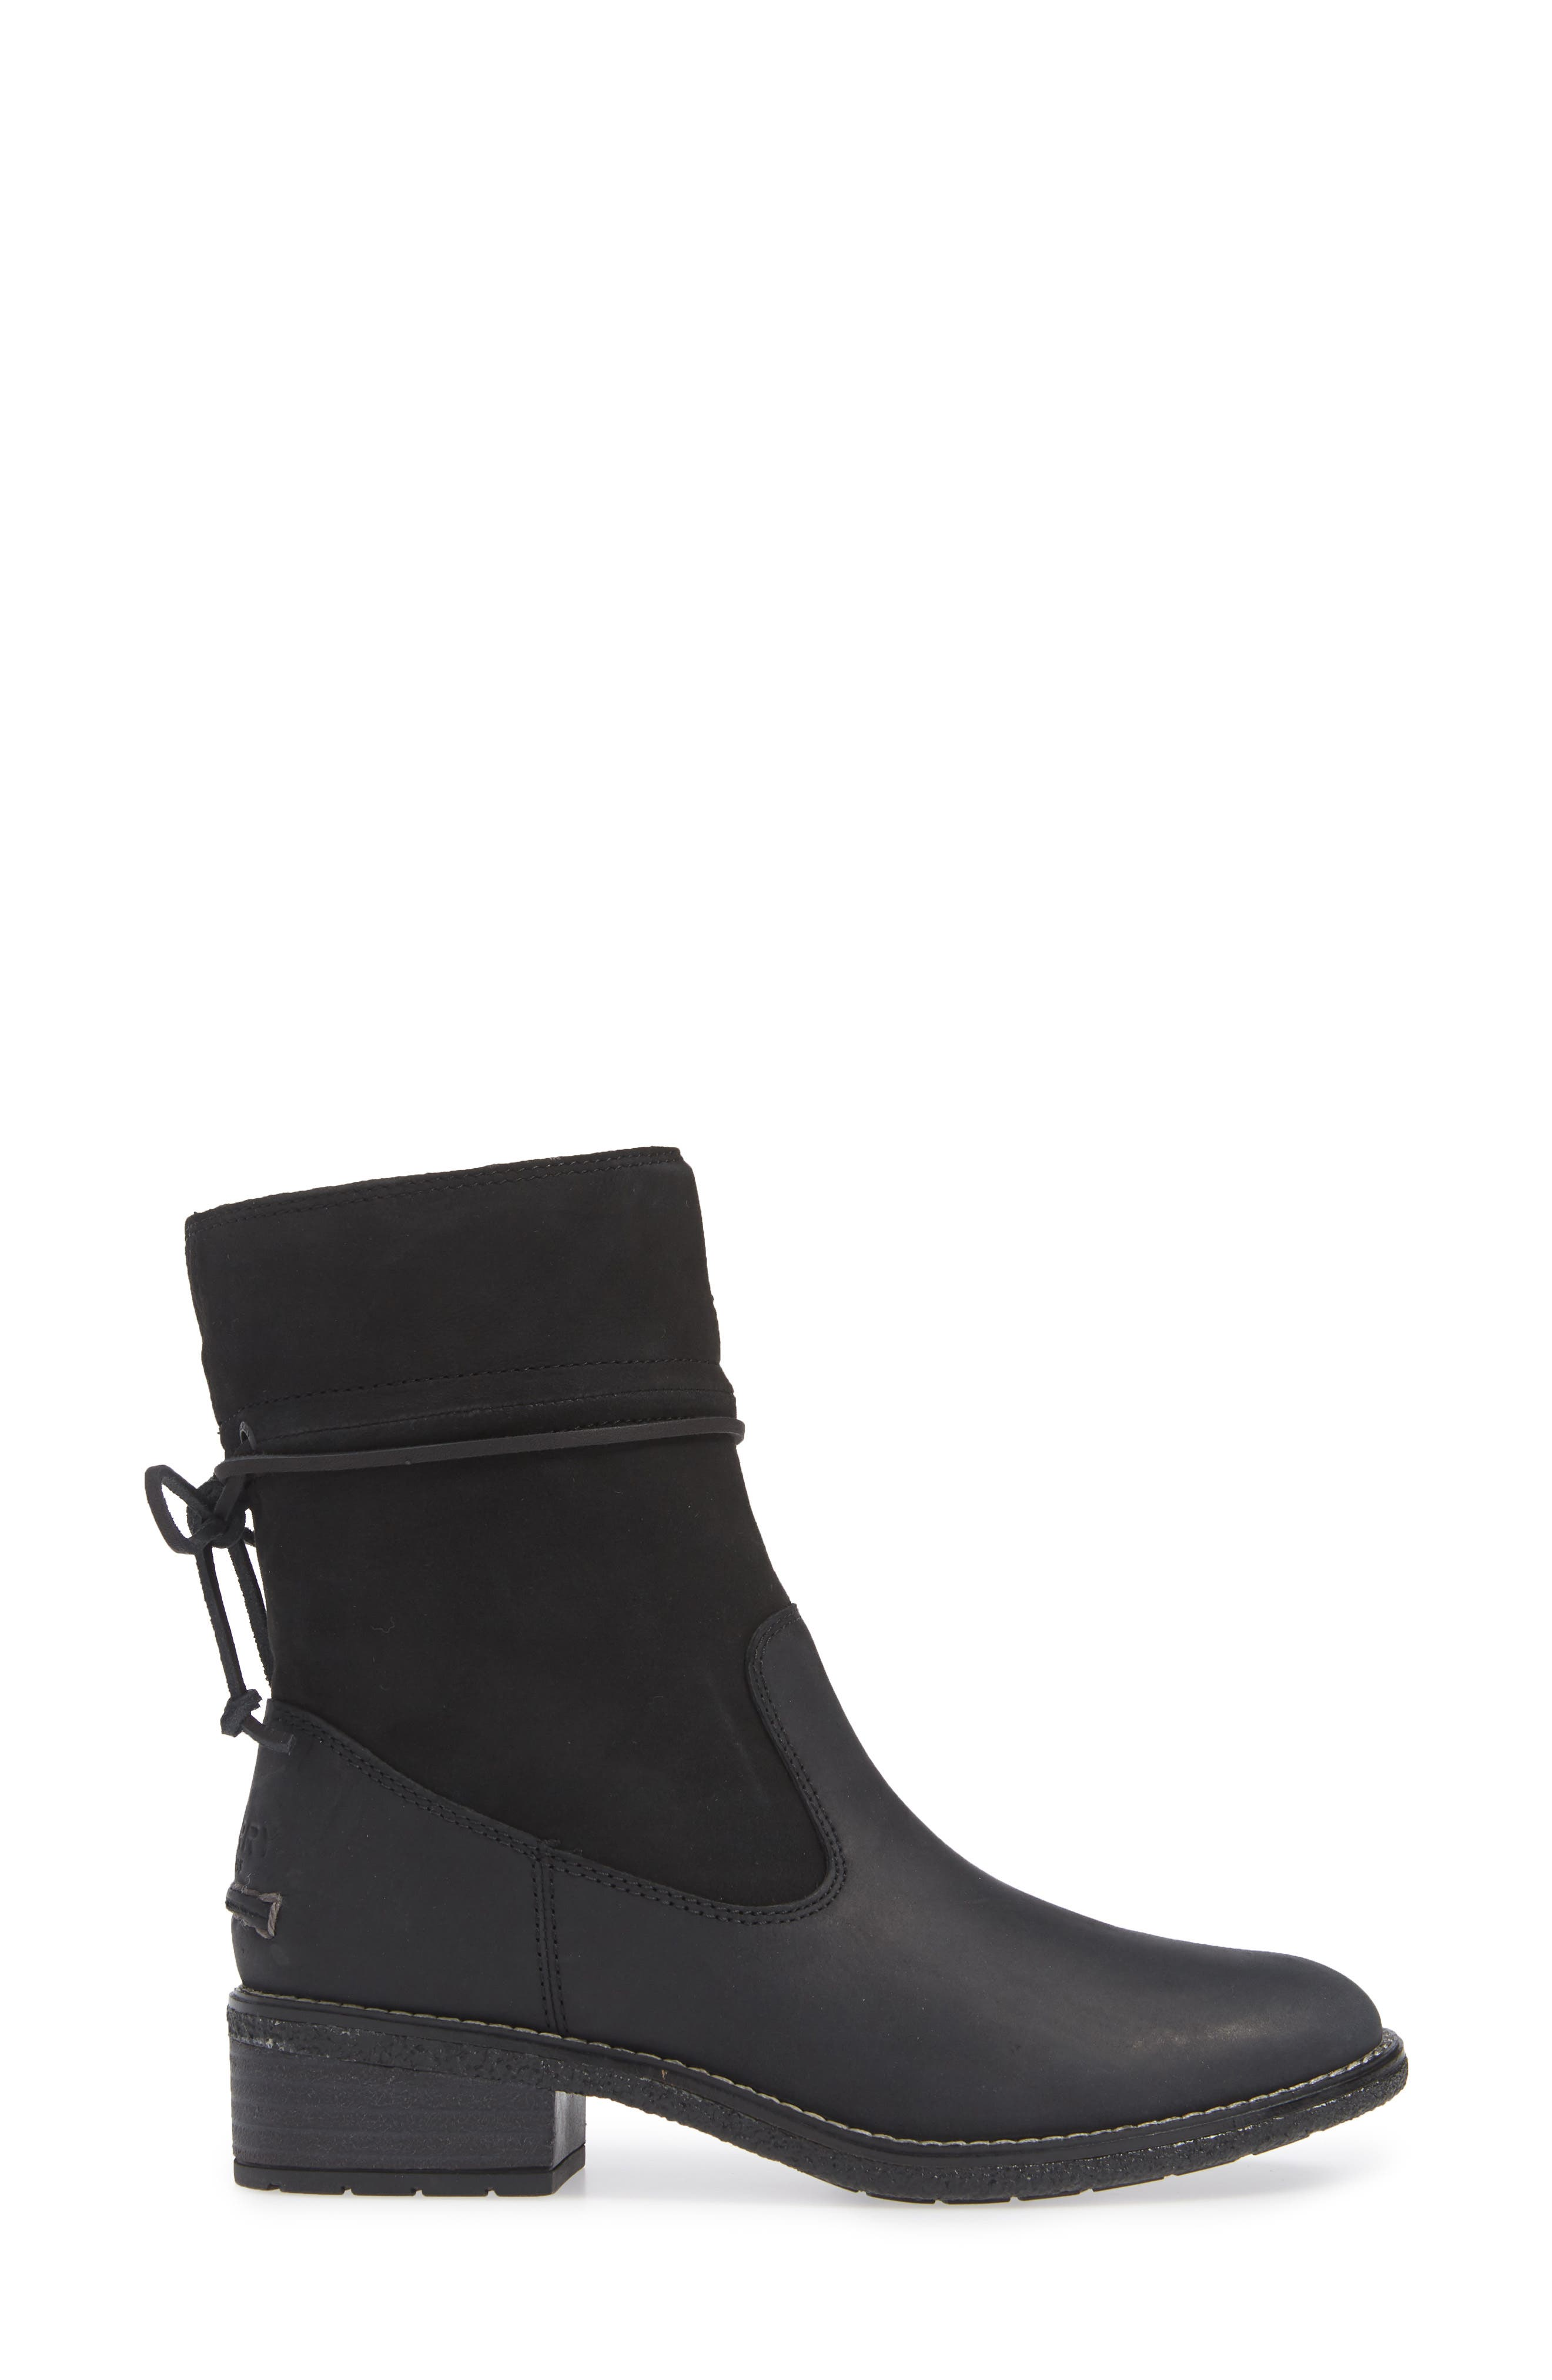 Maya Ronan Bootie,                             Alternate thumbnail 3, color,                             BLACK SUEDE/ LEATHER